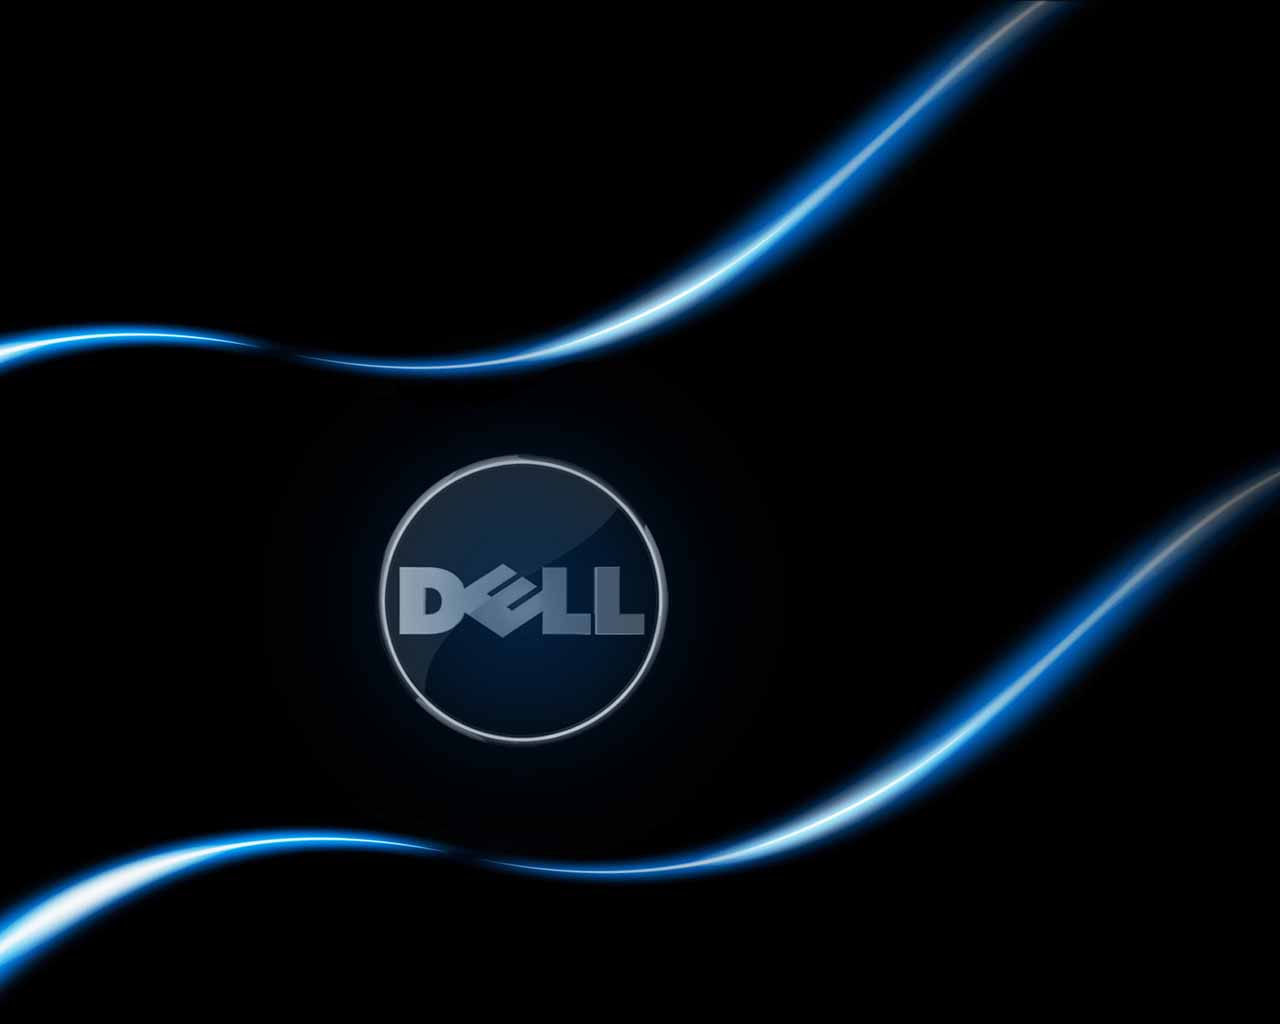 Laptop Dell Wallpapers moreover Imparare Scrivere Lettere Alfabeto further Dell Refresh Der Latitude 5000 Business Notebook Serie 158210 0 likewise Dell Desktop Wallpapers moreover 8. on dell vostro